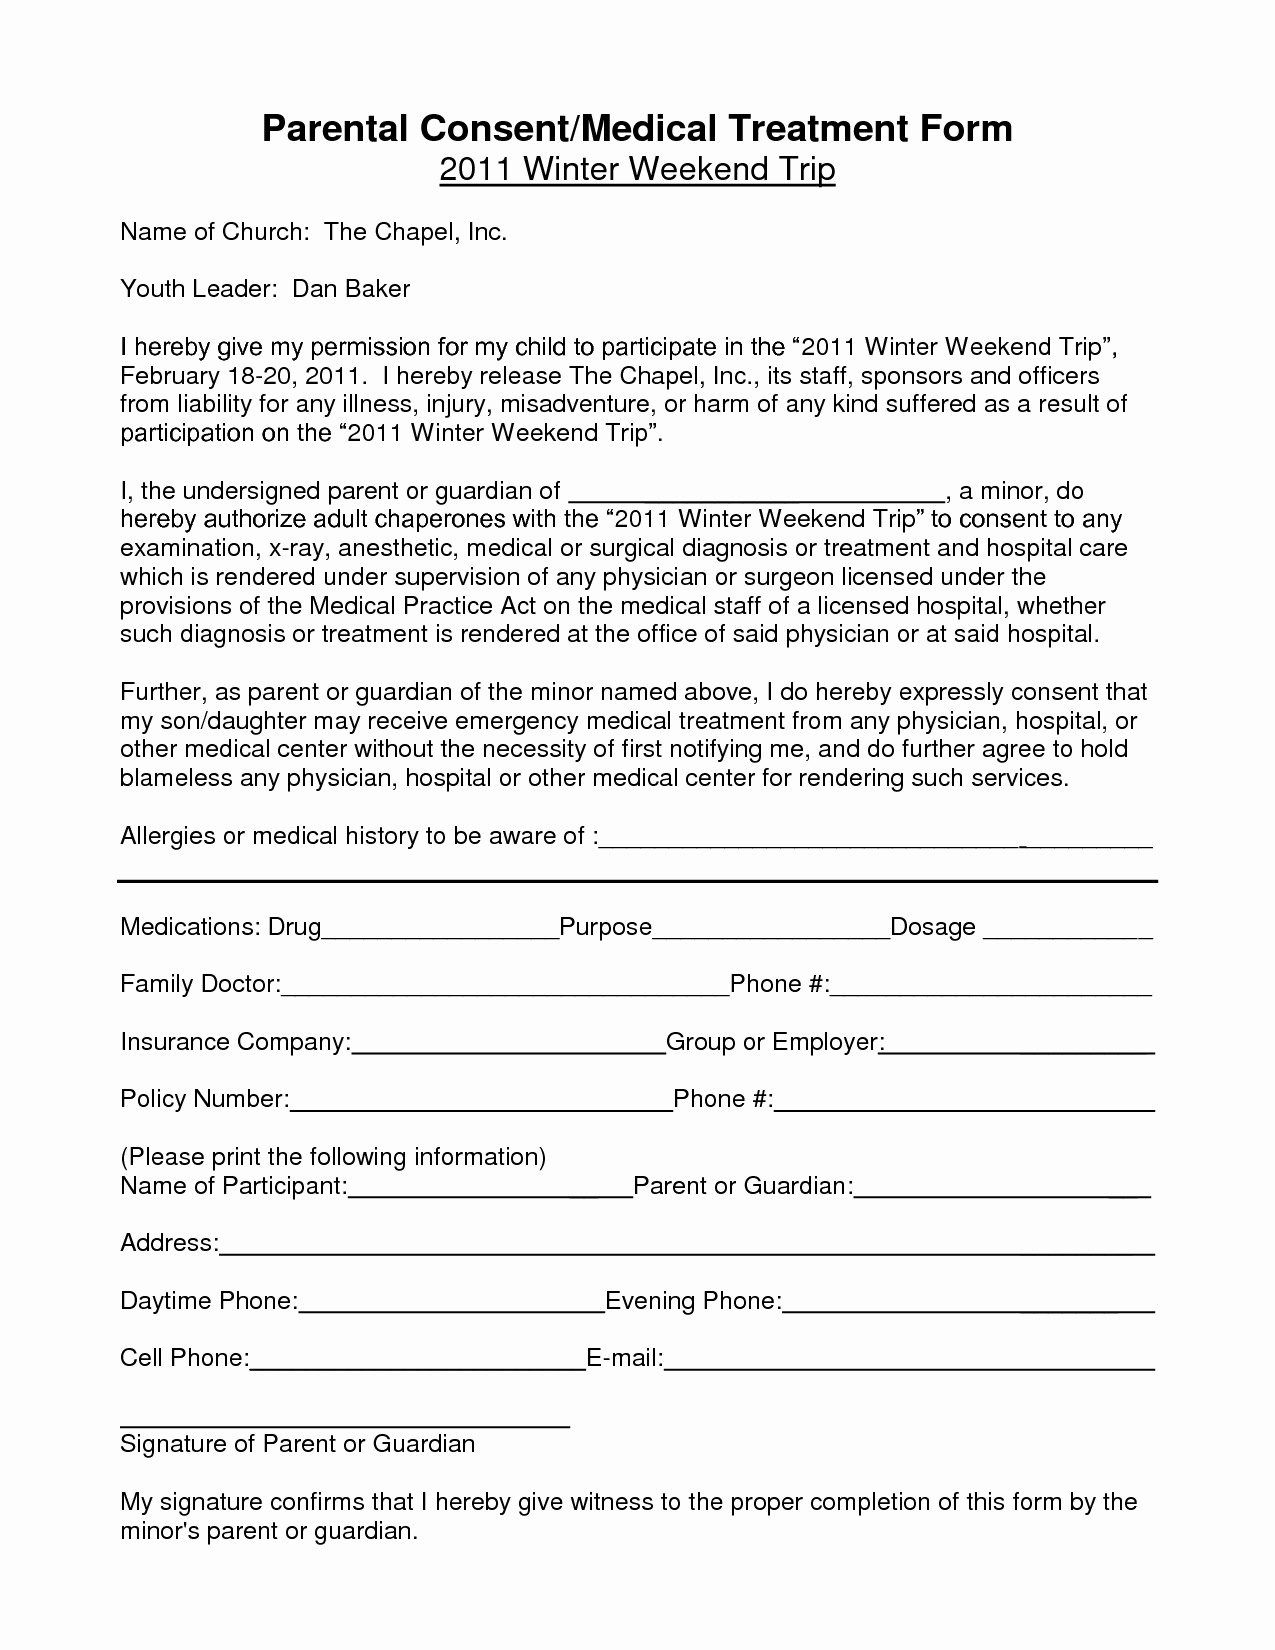 Fake Field Trip form Beautiful Notarized Medical Consent form for Minor